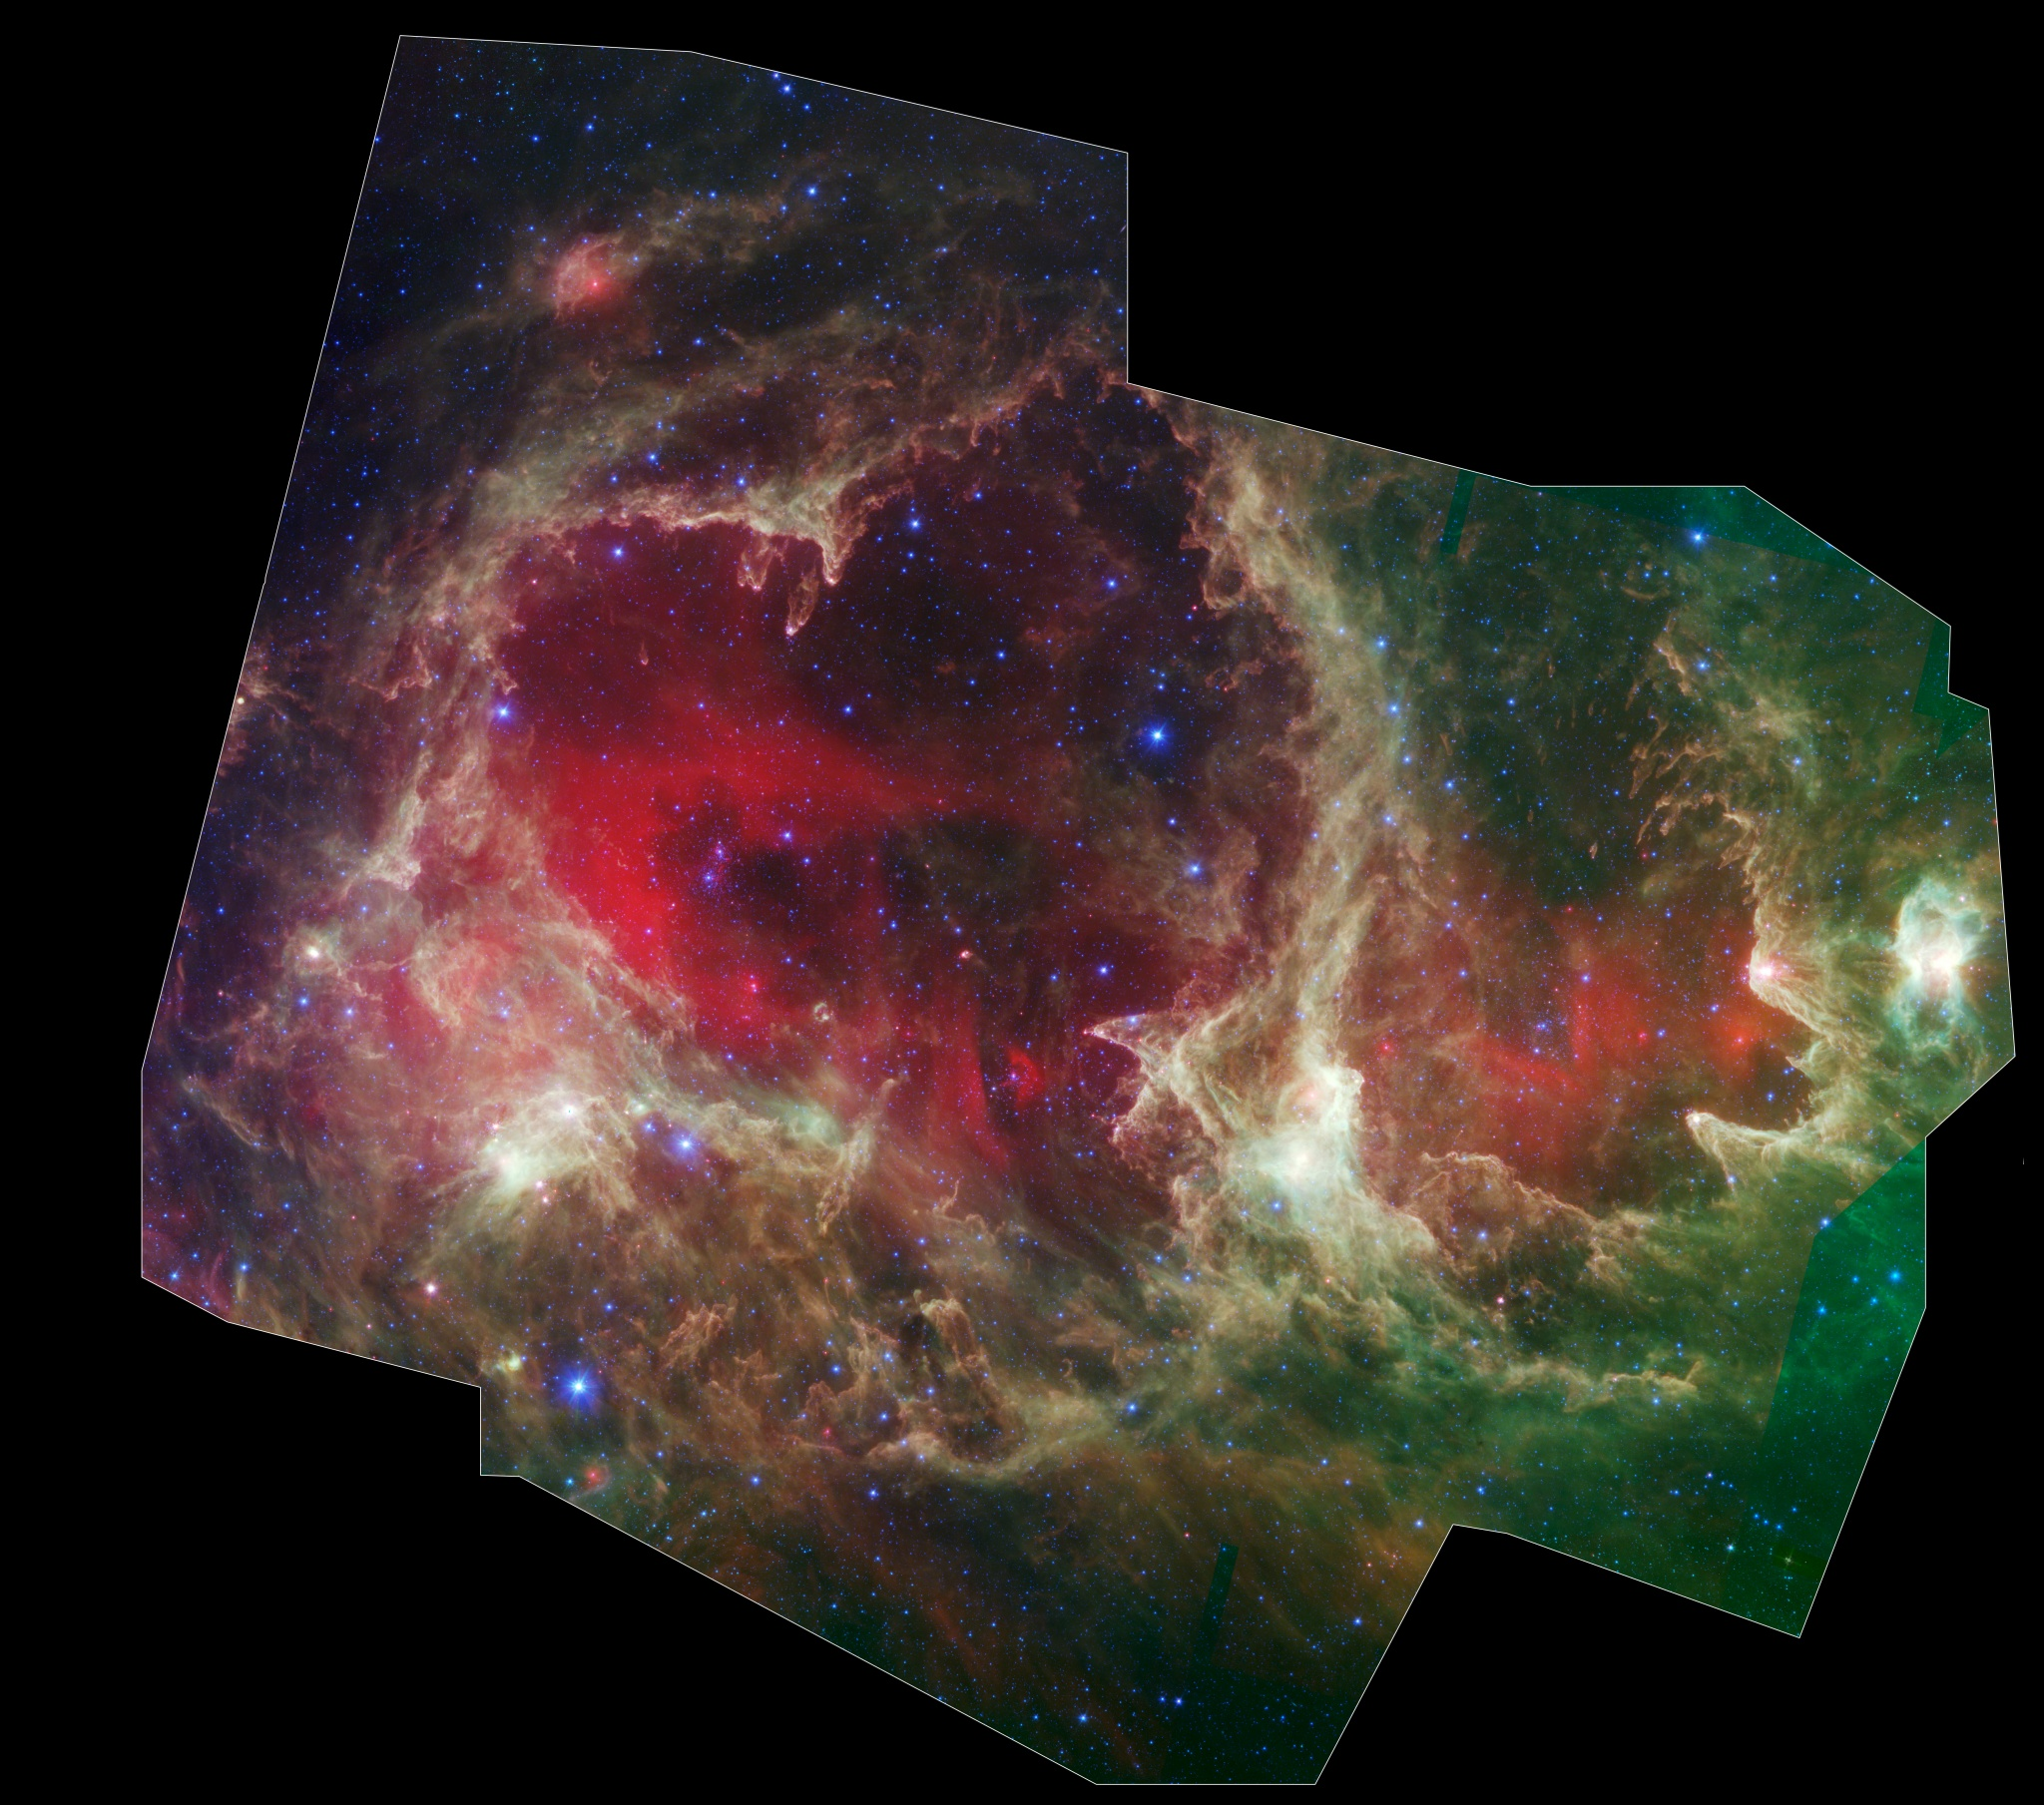 Generations of Stars in W5 Credit Lori Allen, Xavier Koenig (Harvard-Smithsonian CfA) et al., JPL-Caltech, NASA